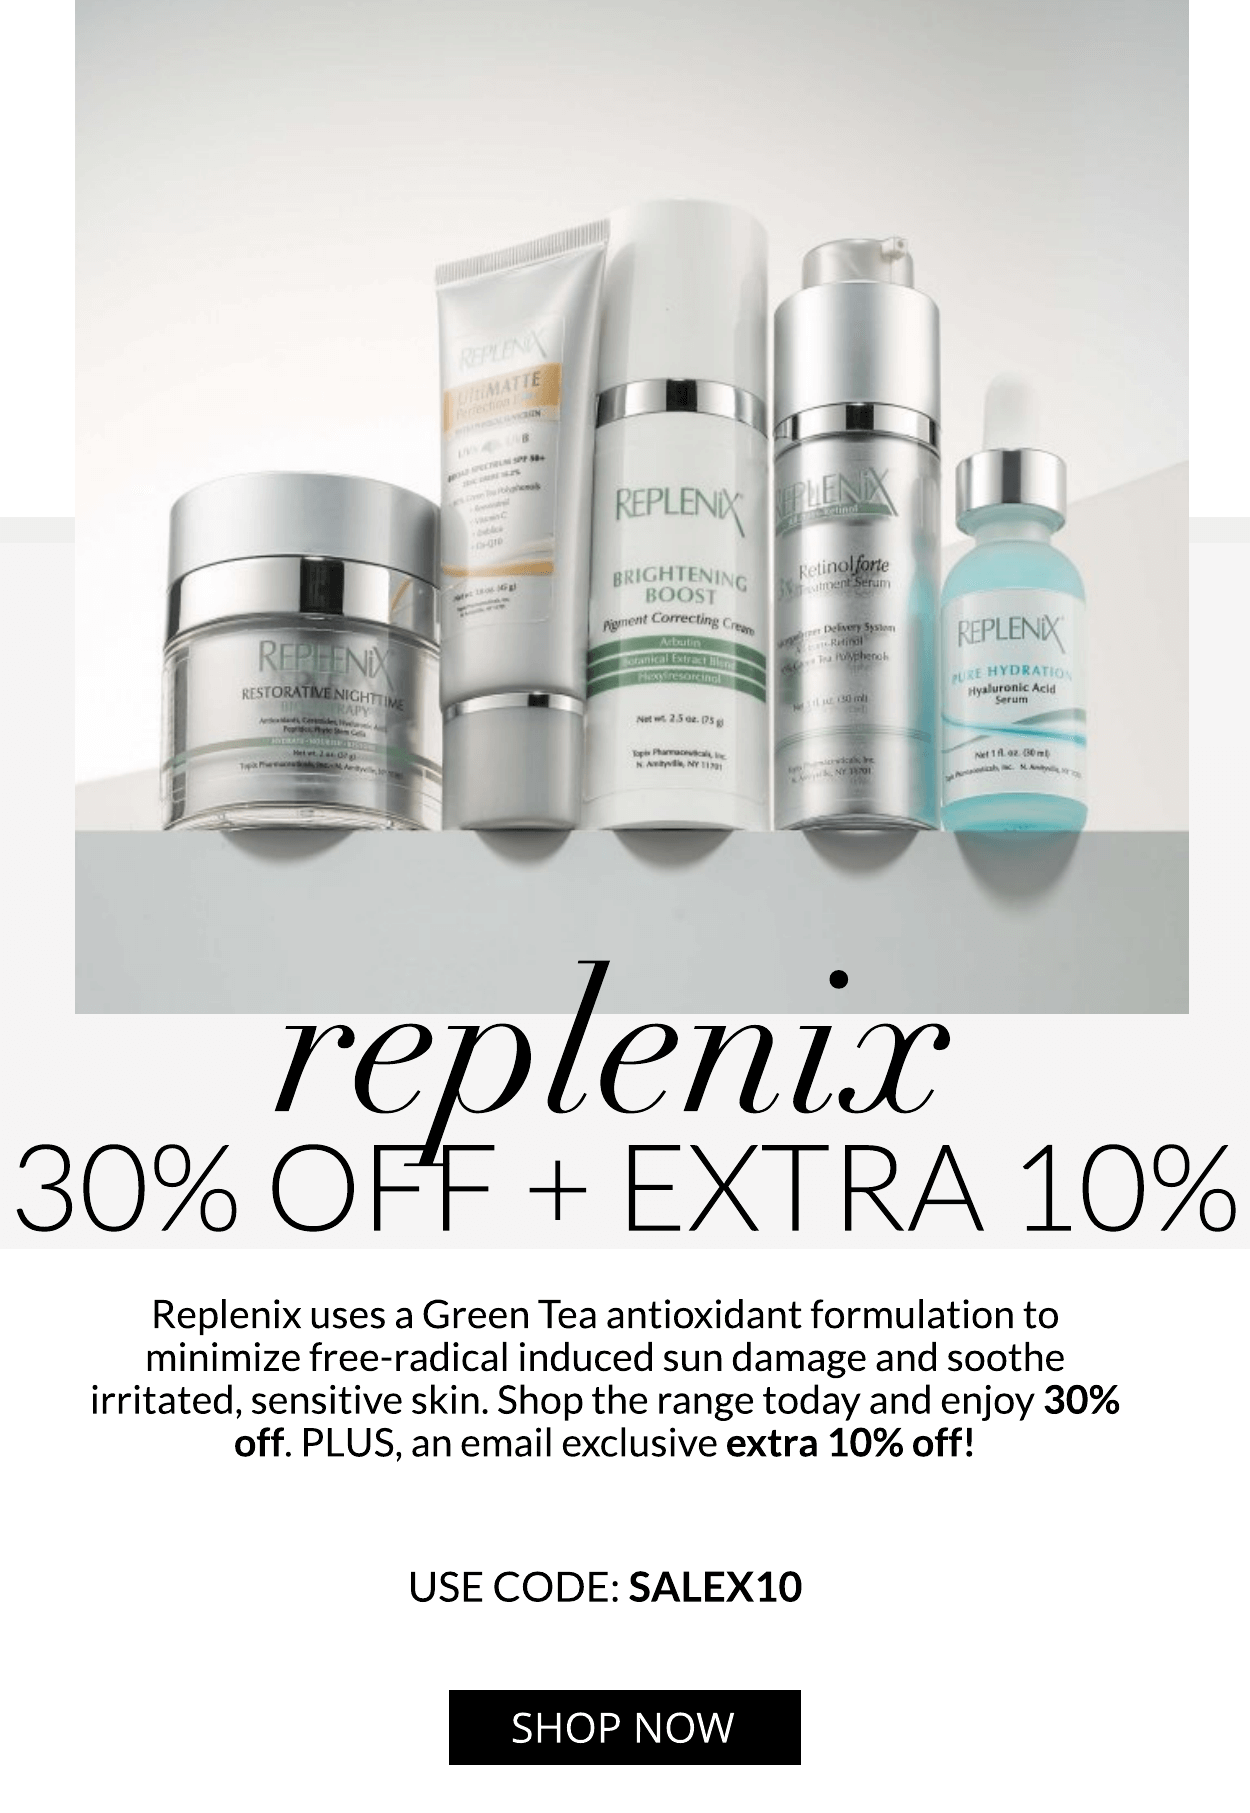 REPLENIX: 30% OFF + EXTRA 10% + FREE GIFT